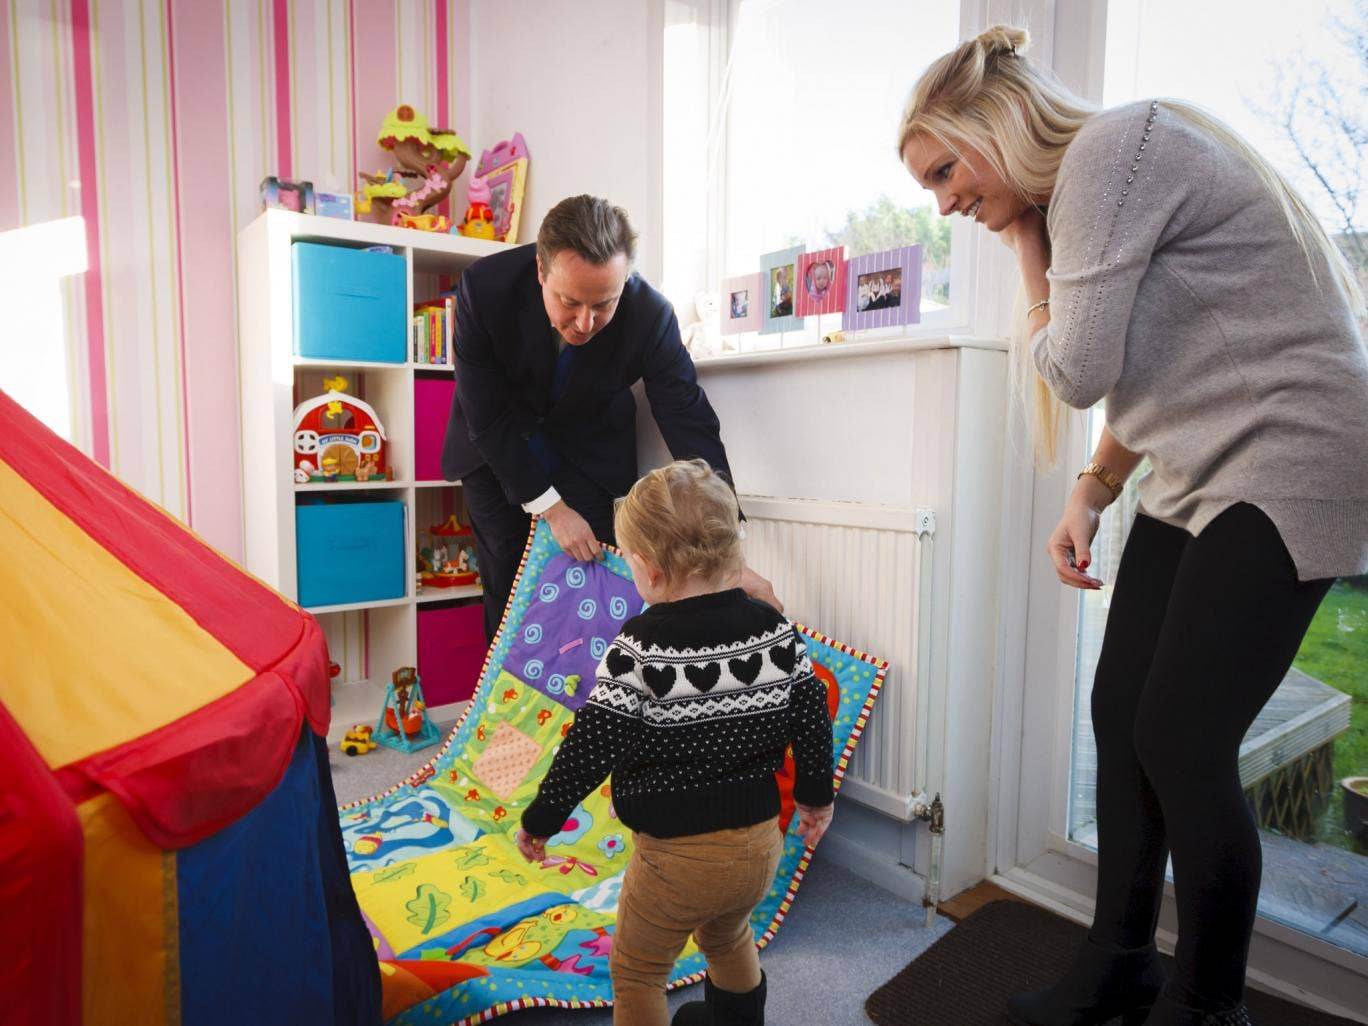 Prime Minister David Cameron with Sharon Ray and her daughter Maisie, 2, during a visit to her home in Southampton, Hampshire which she has bought through the government's Help to Buy scheme